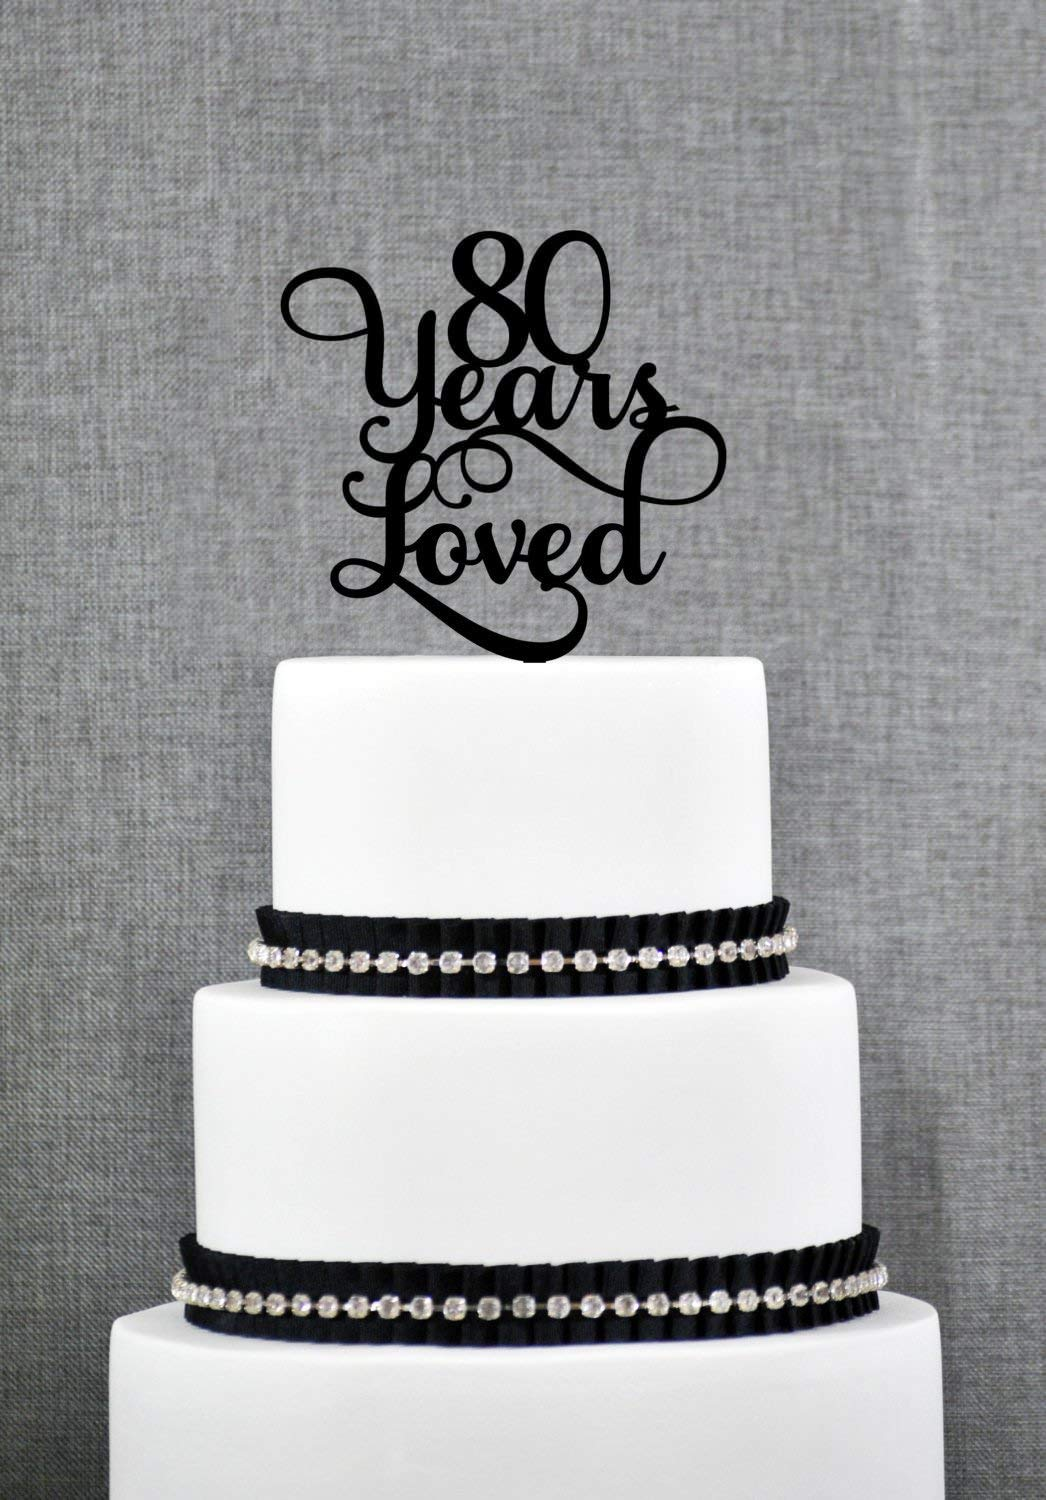 80 Years Loved Birthday Cake Topper Elegant 80th Anniversary Gift